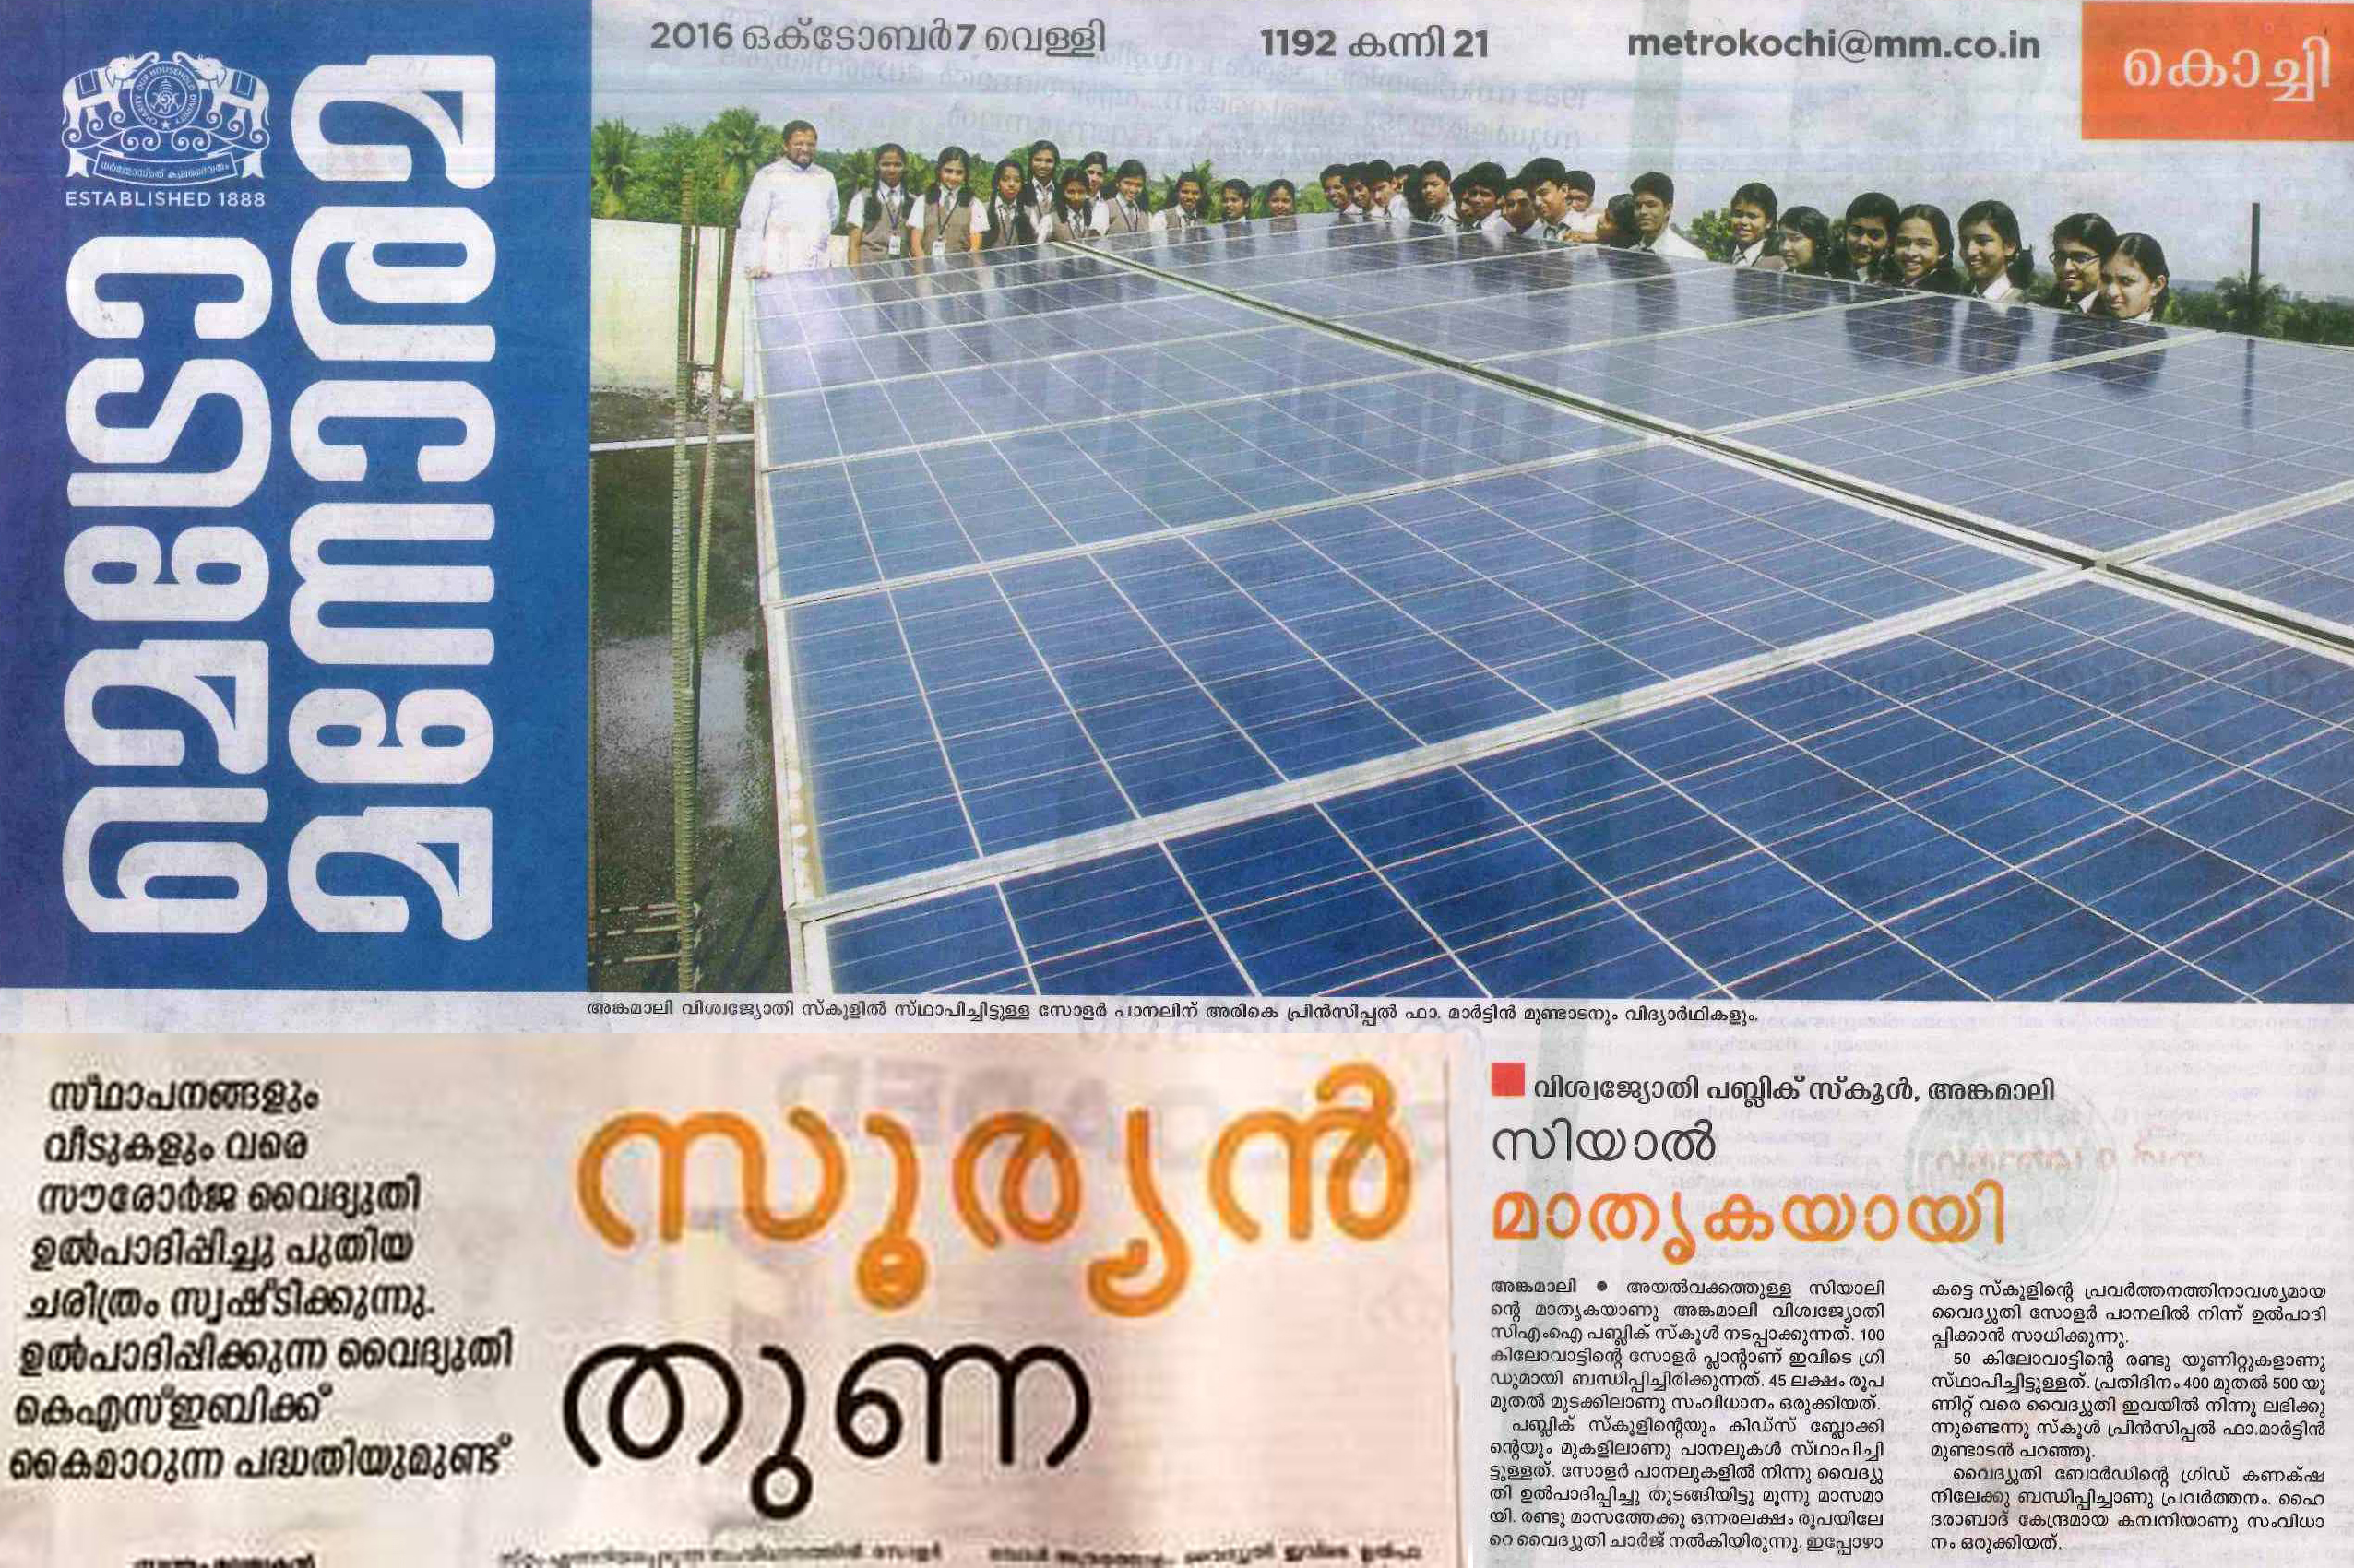 Metro Manorama 07-10-2016 copy